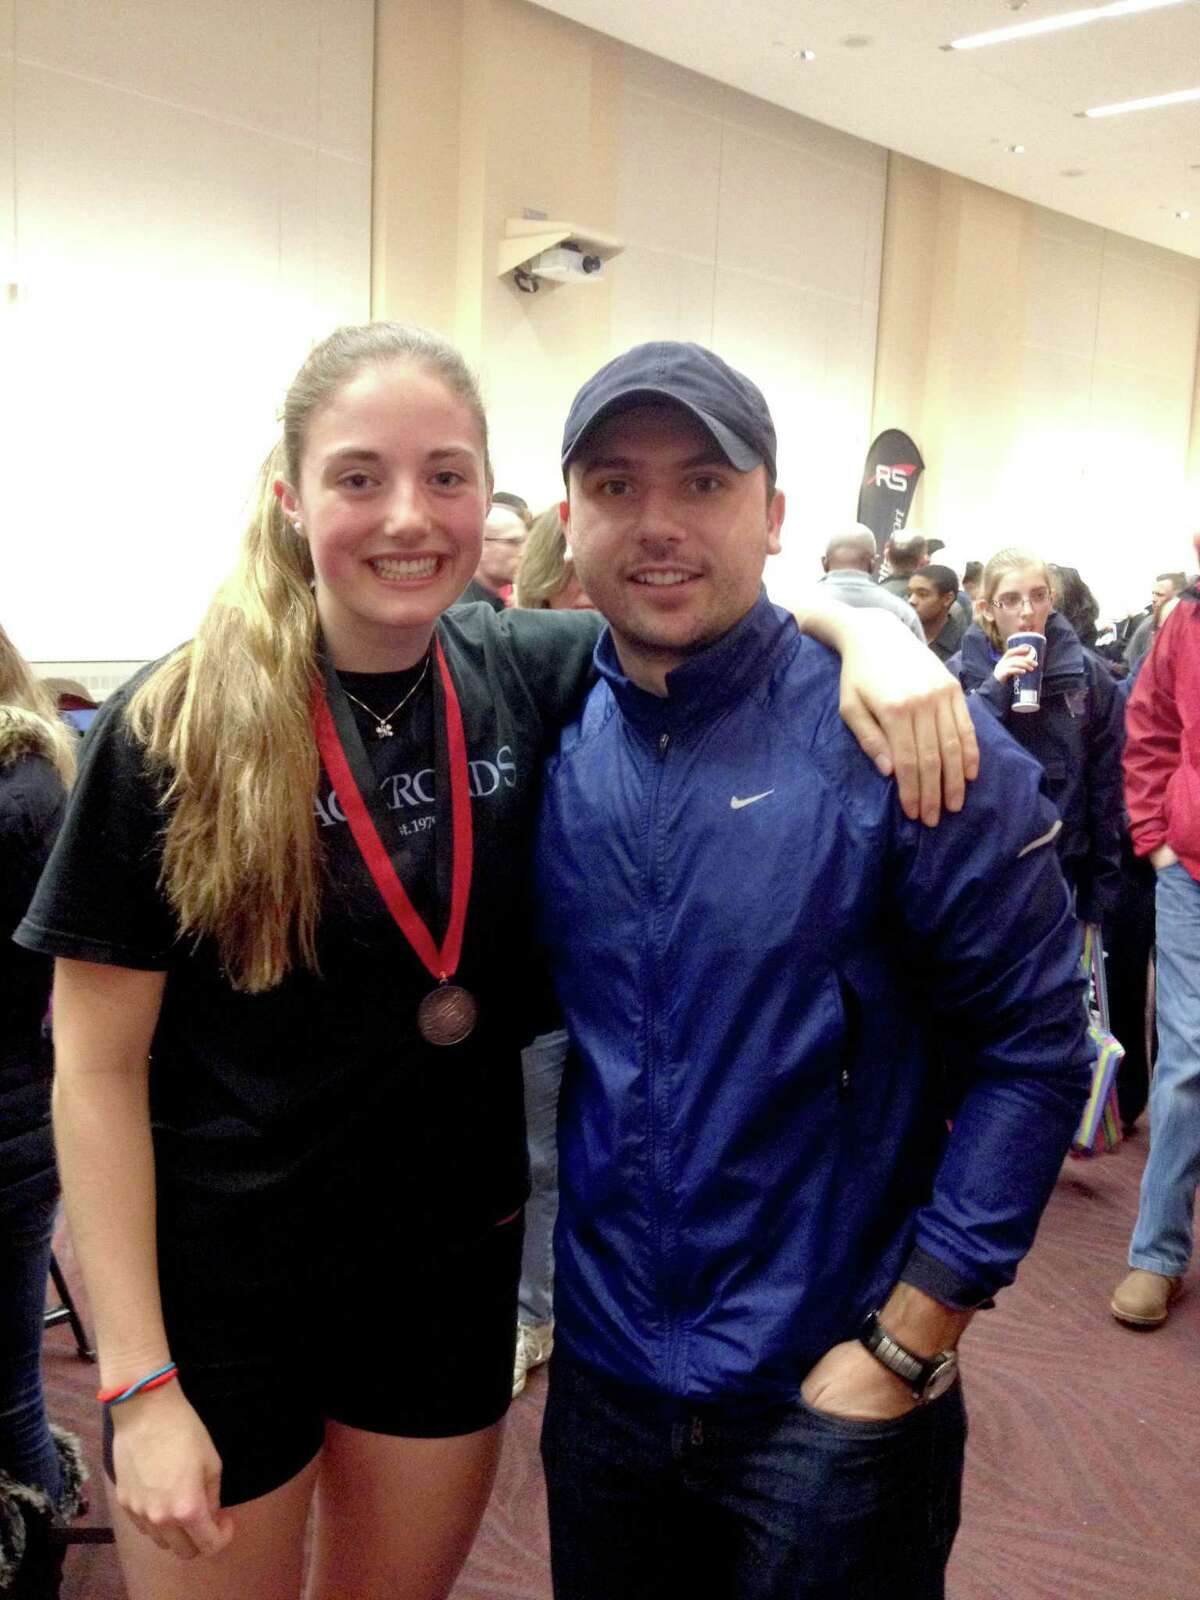 Melissa Curtis earned a bronze medal at the C.R.A.S.H.-B. World Indoor Rowing Championship, which was held recently in Boston. Curtis, seen here celebrating with Greenwich Crew Head Women's Coach Marko Serafimovski, finished third out of 230 athletes in the Junior Women's Openweight event. It was the first time in Greenwich Crew's history that a member of the junior team has placed in the top three in a C.R.A.S.H.-B. event, which draws athletes from around the world.